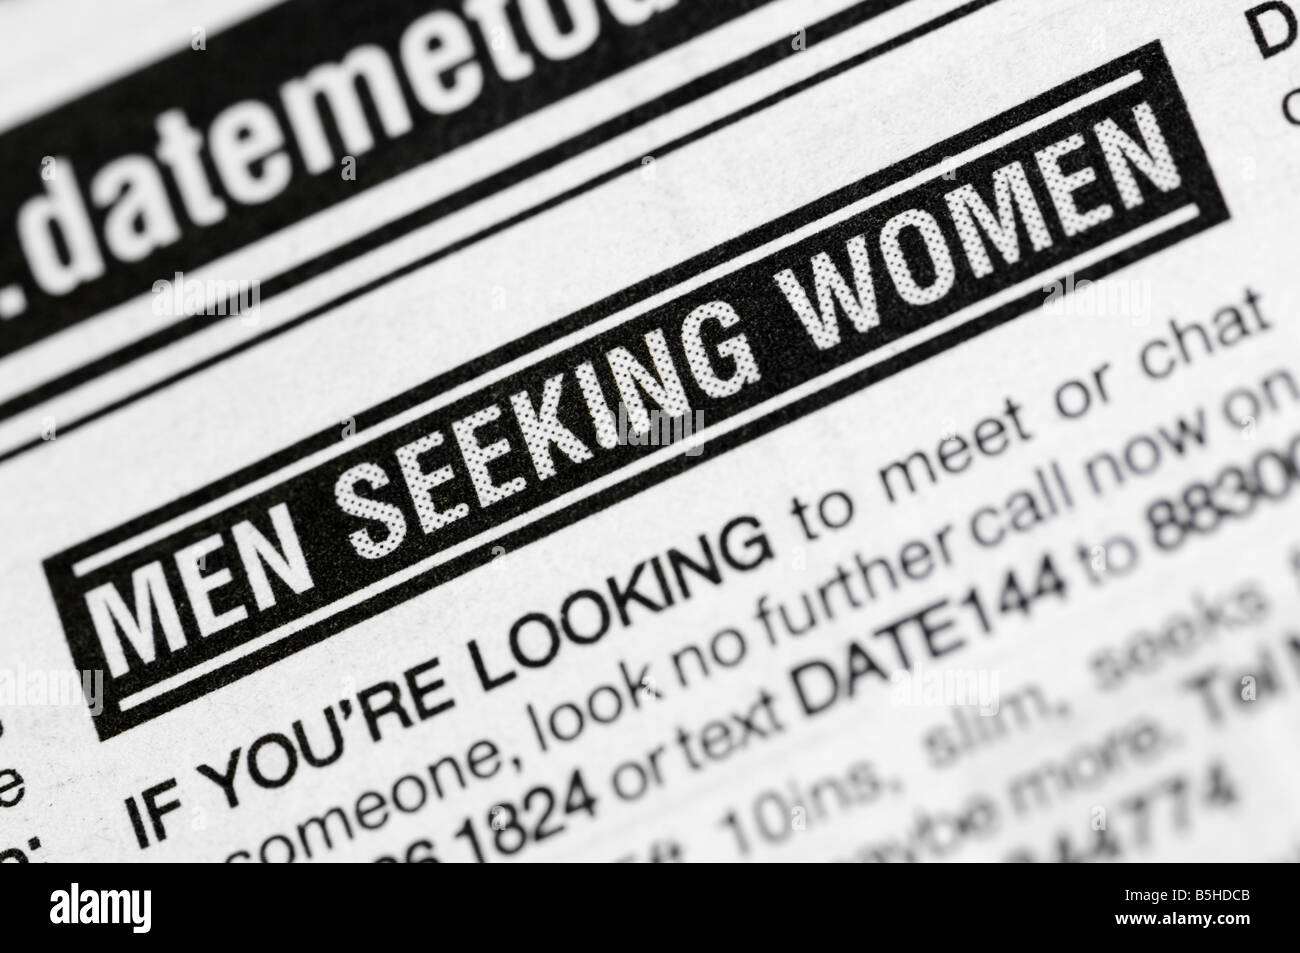 Sarasota personals women seeking men classified ads